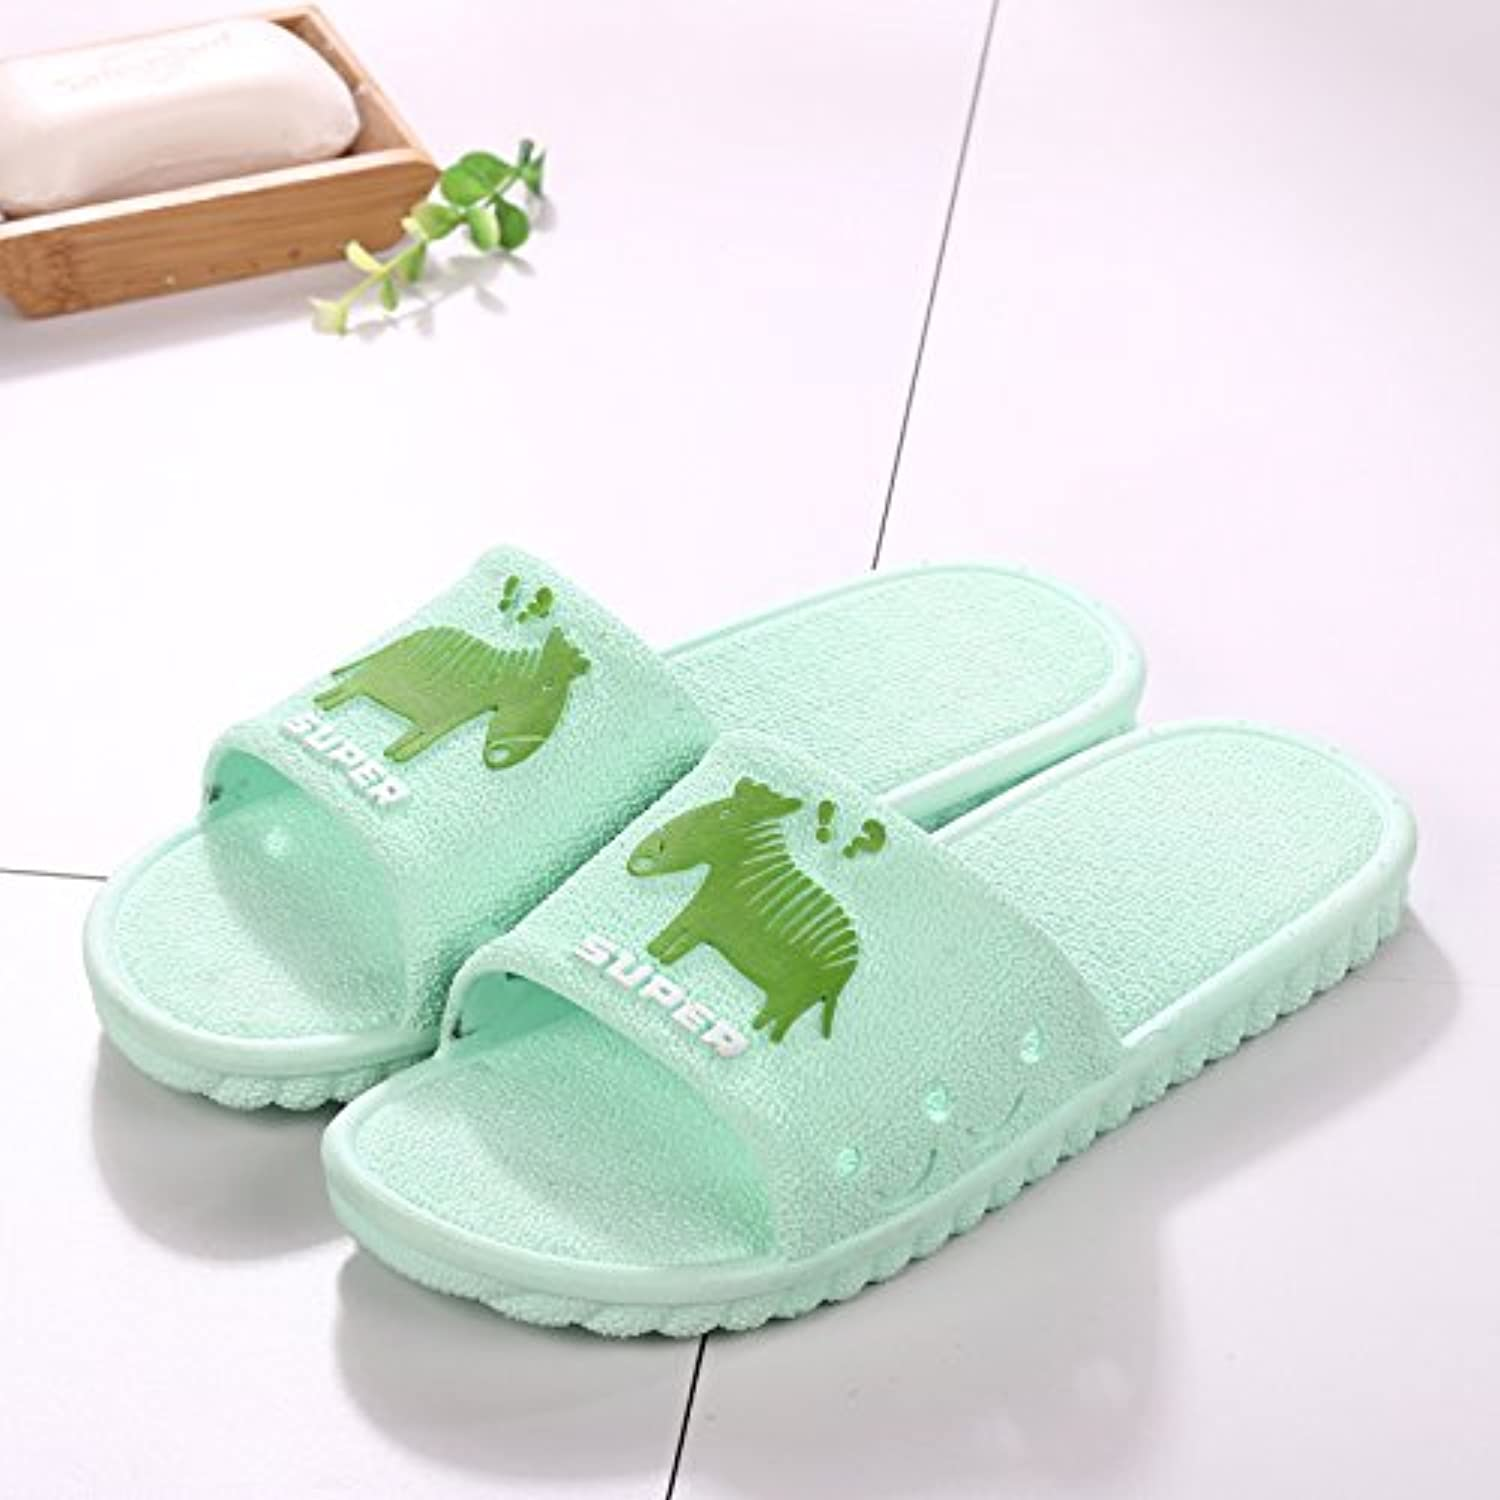 fankou Summer Sandals Men Tide Bathroom Bath Anti-Slip Thick Outside The Home Interior Cool Slippers,39-40, [Green]